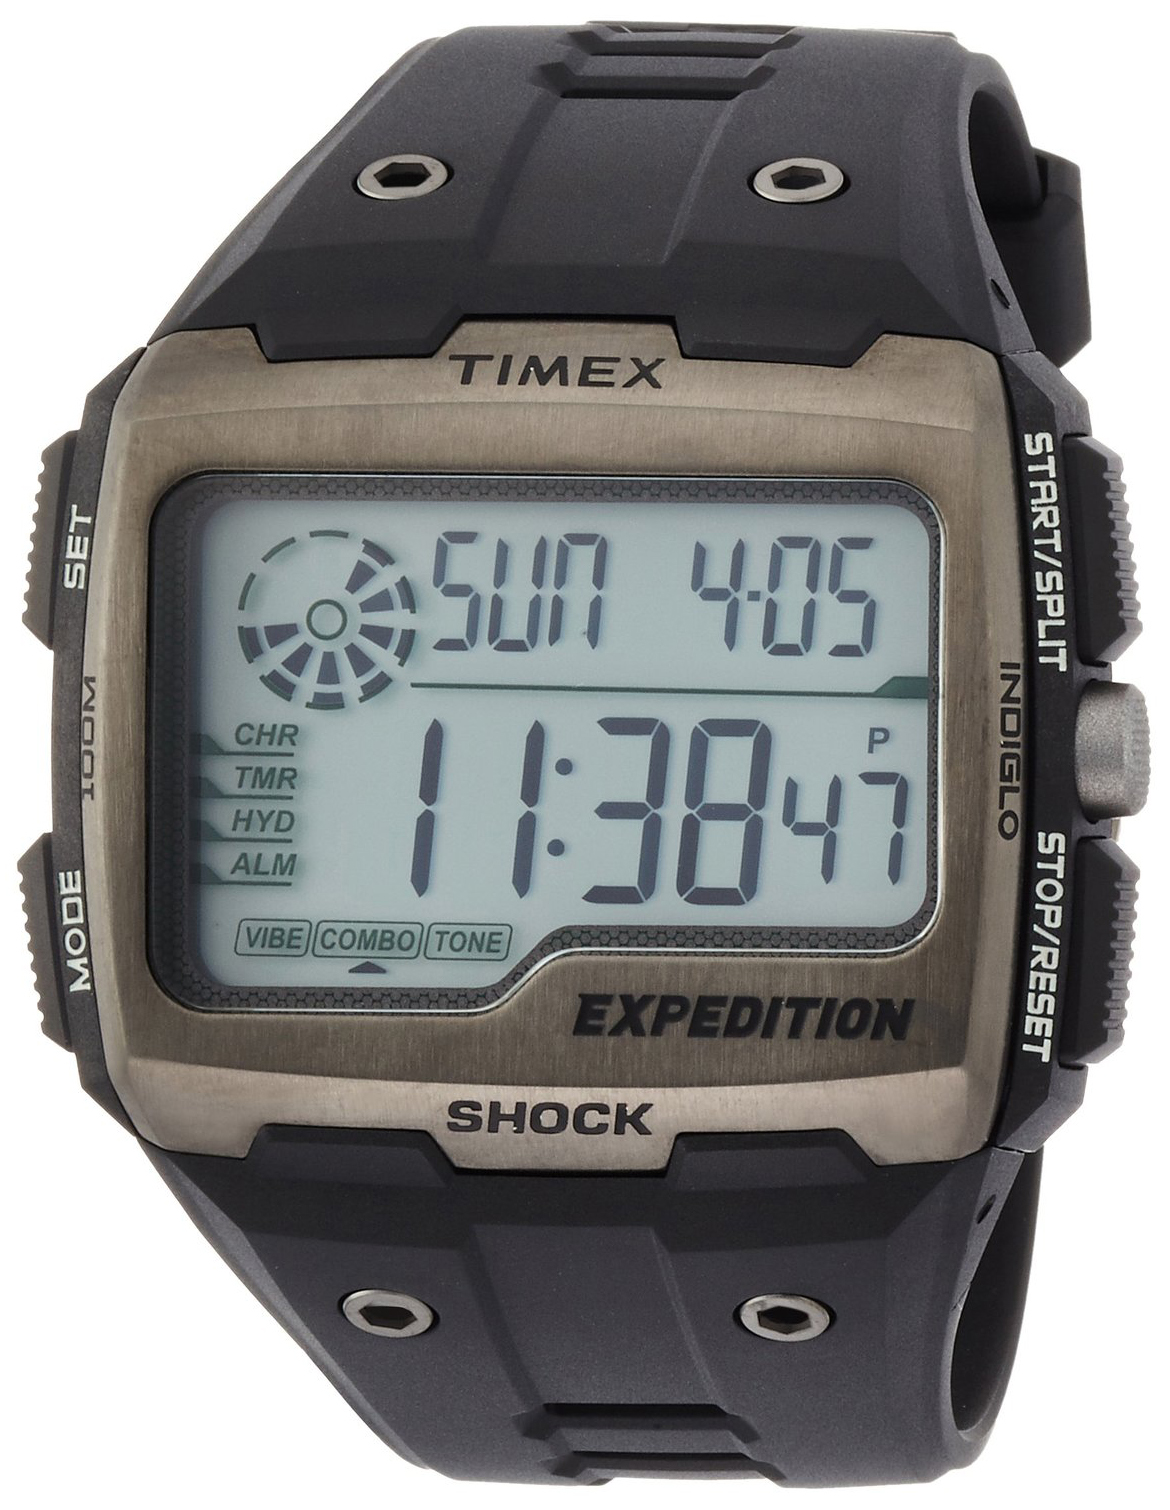 Timex Expedition Herrklocka TW4B02500 LCD/Gummi